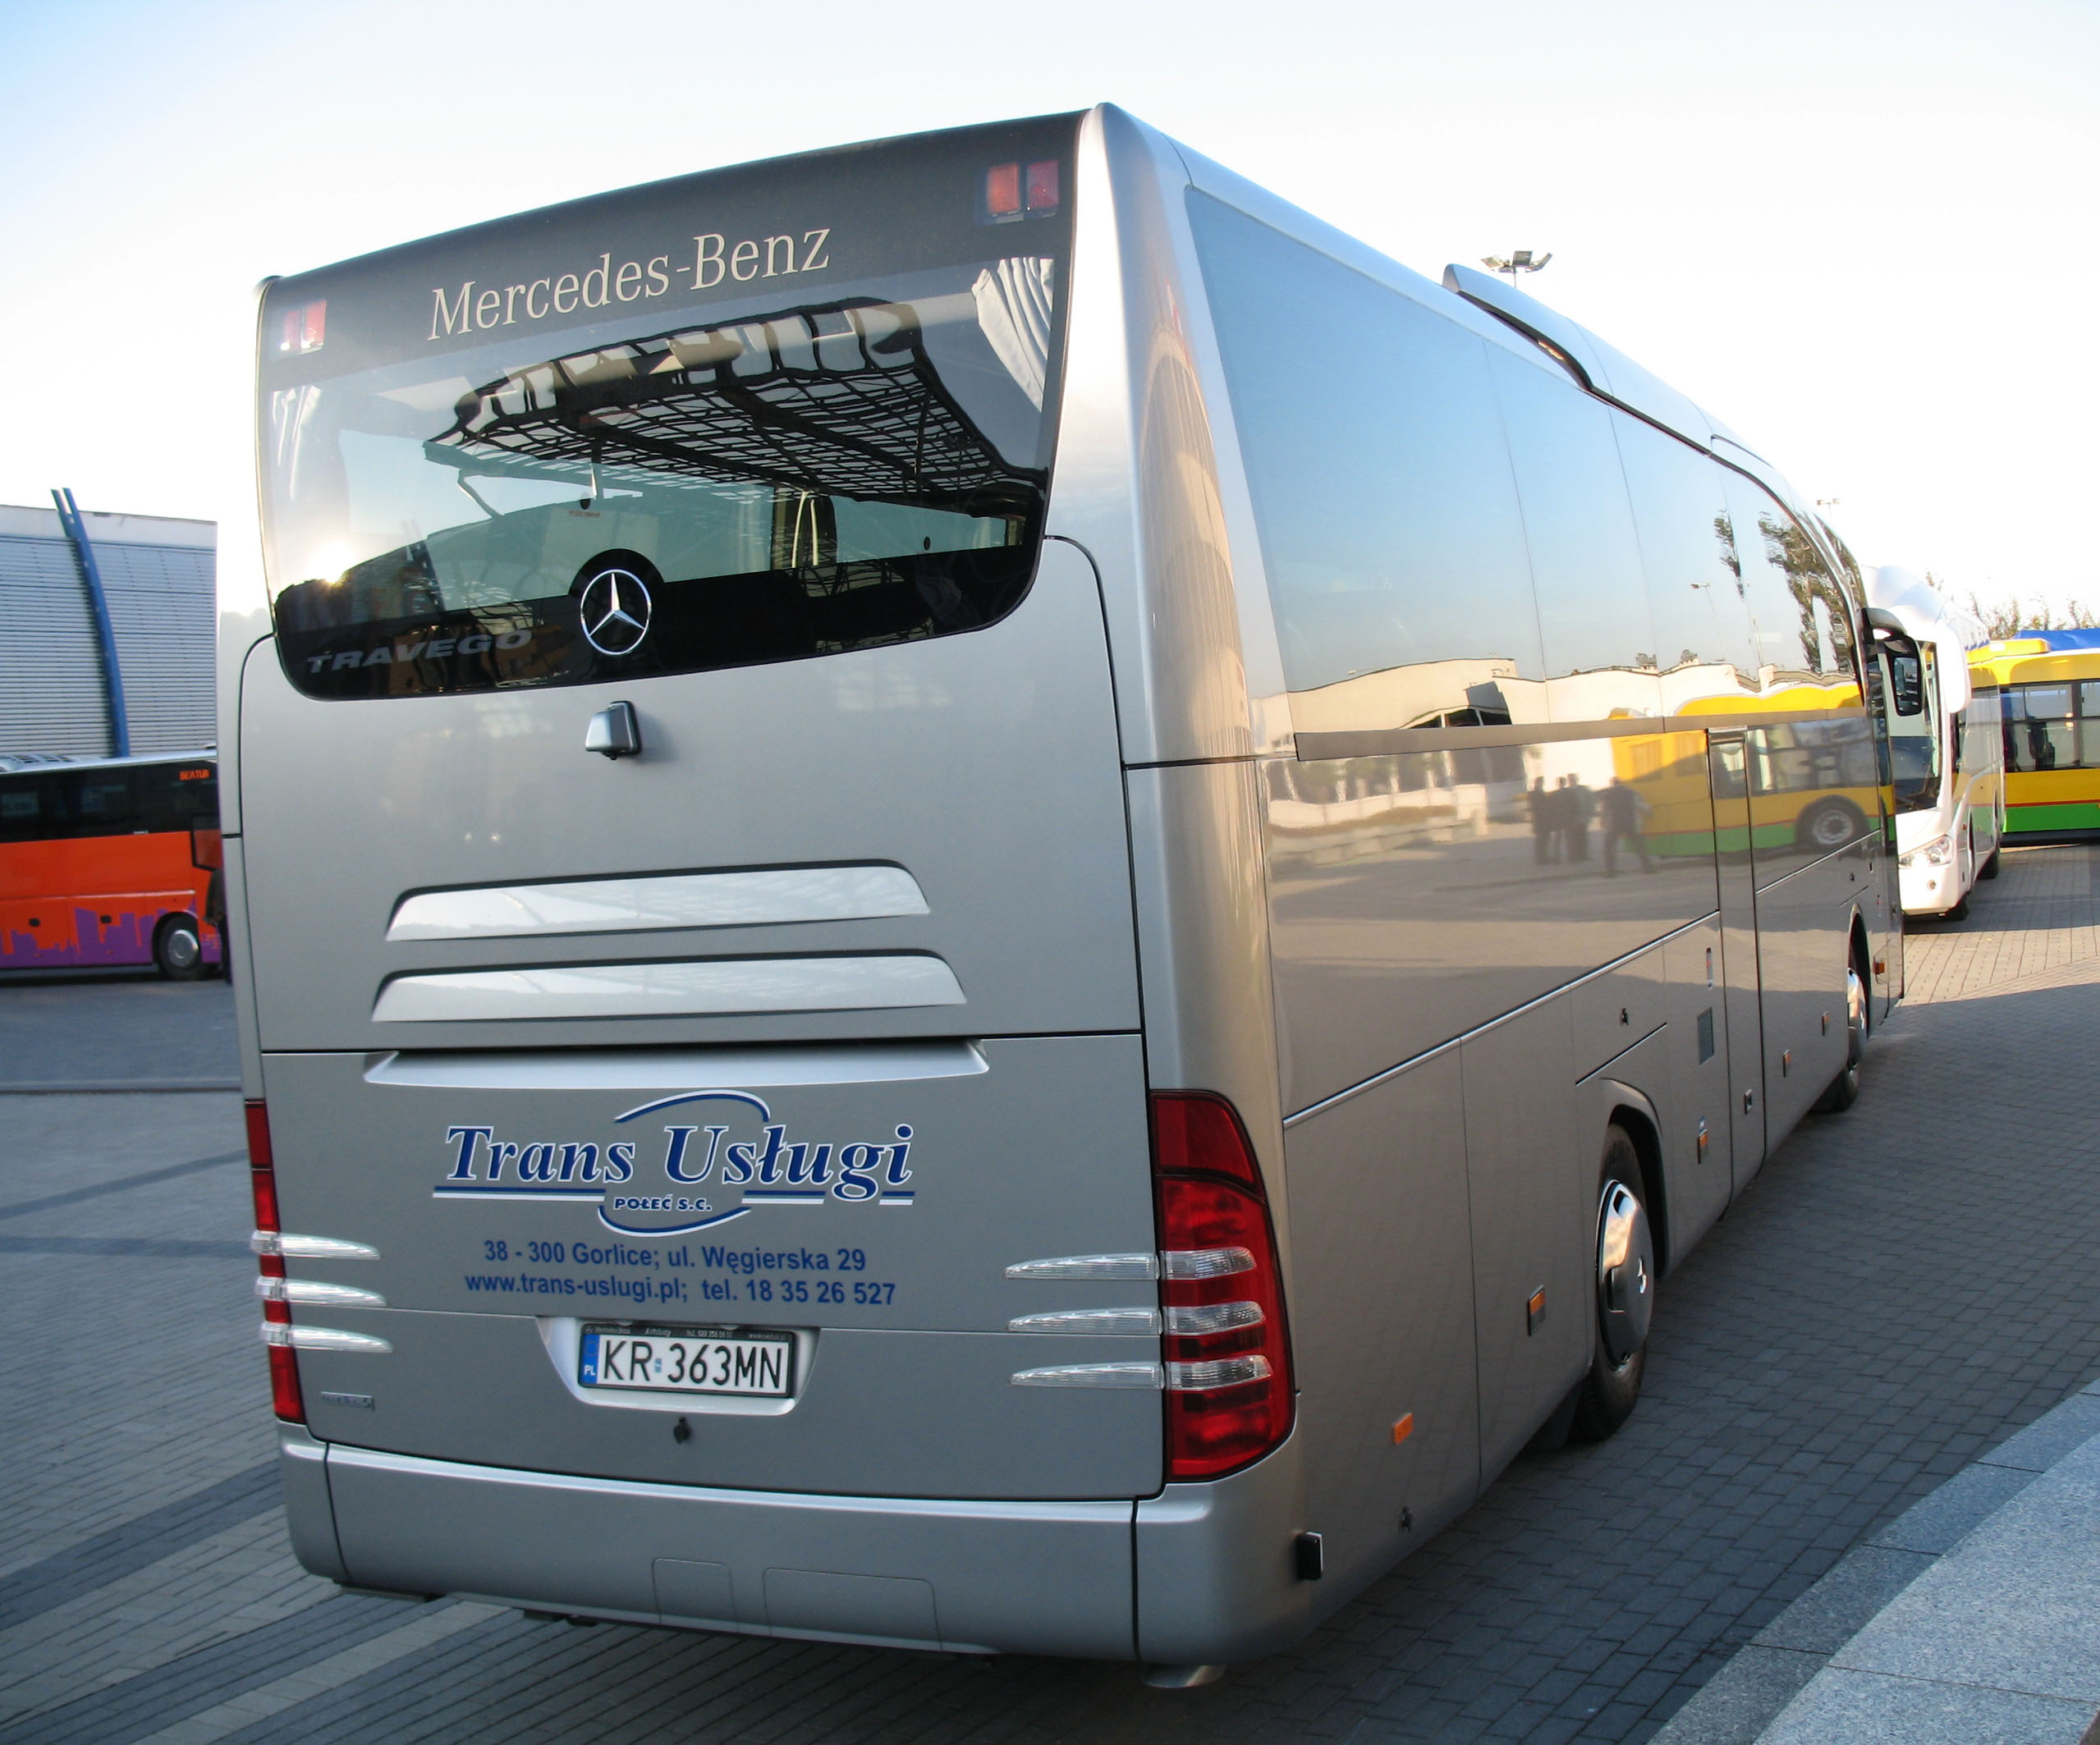 File:Mercedes-Benz Travego in Kielce - rear.jpg ...